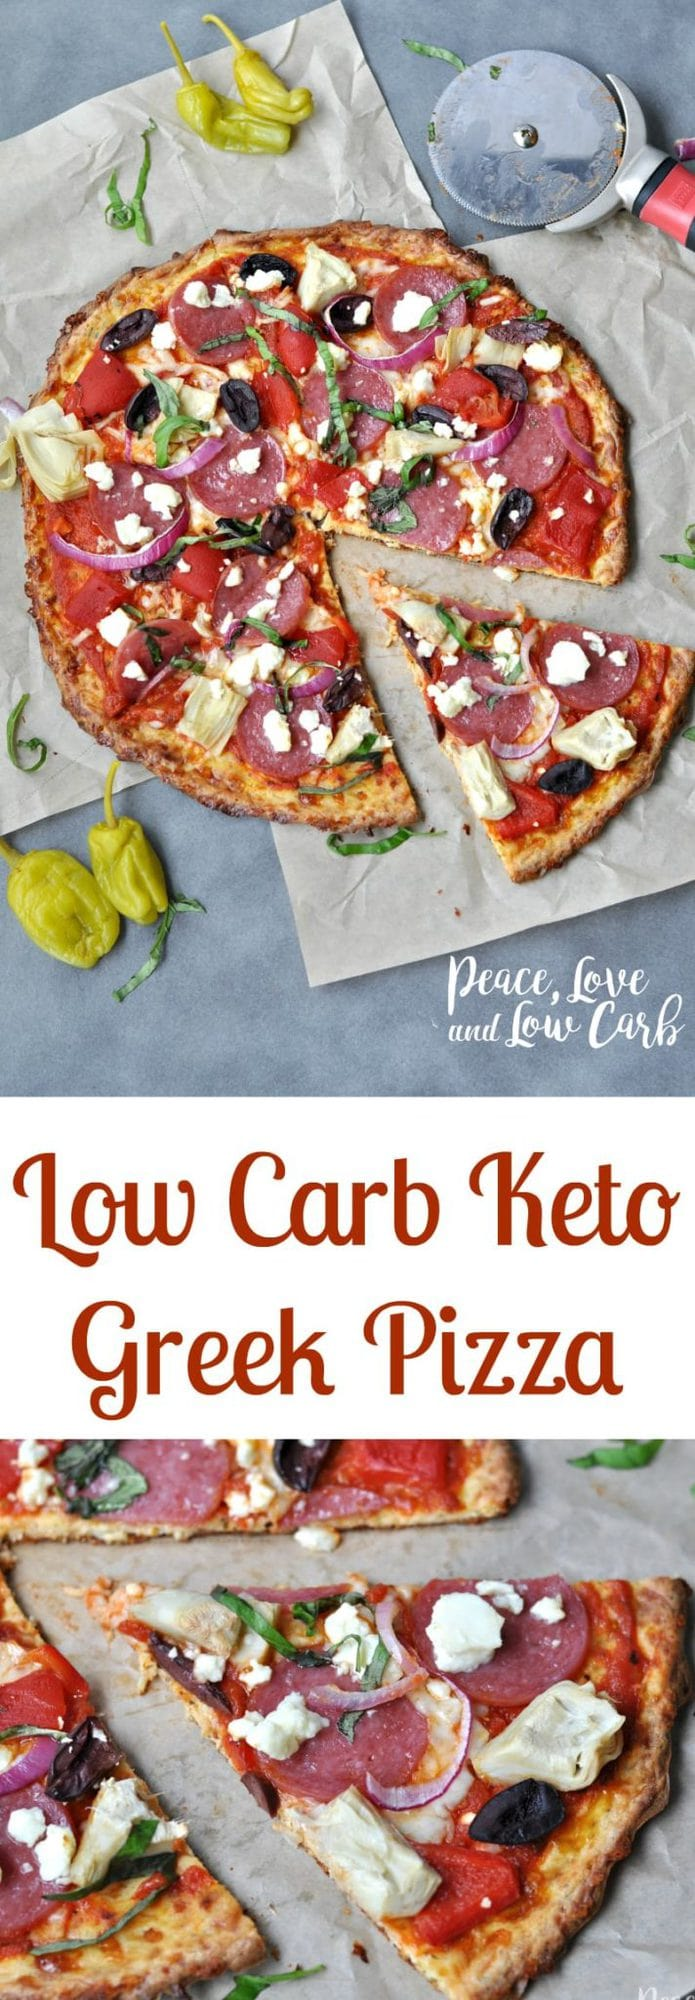 Low Carb Greek Pizza and Nut Free Pizza Crust | Peace Love and Low Carb